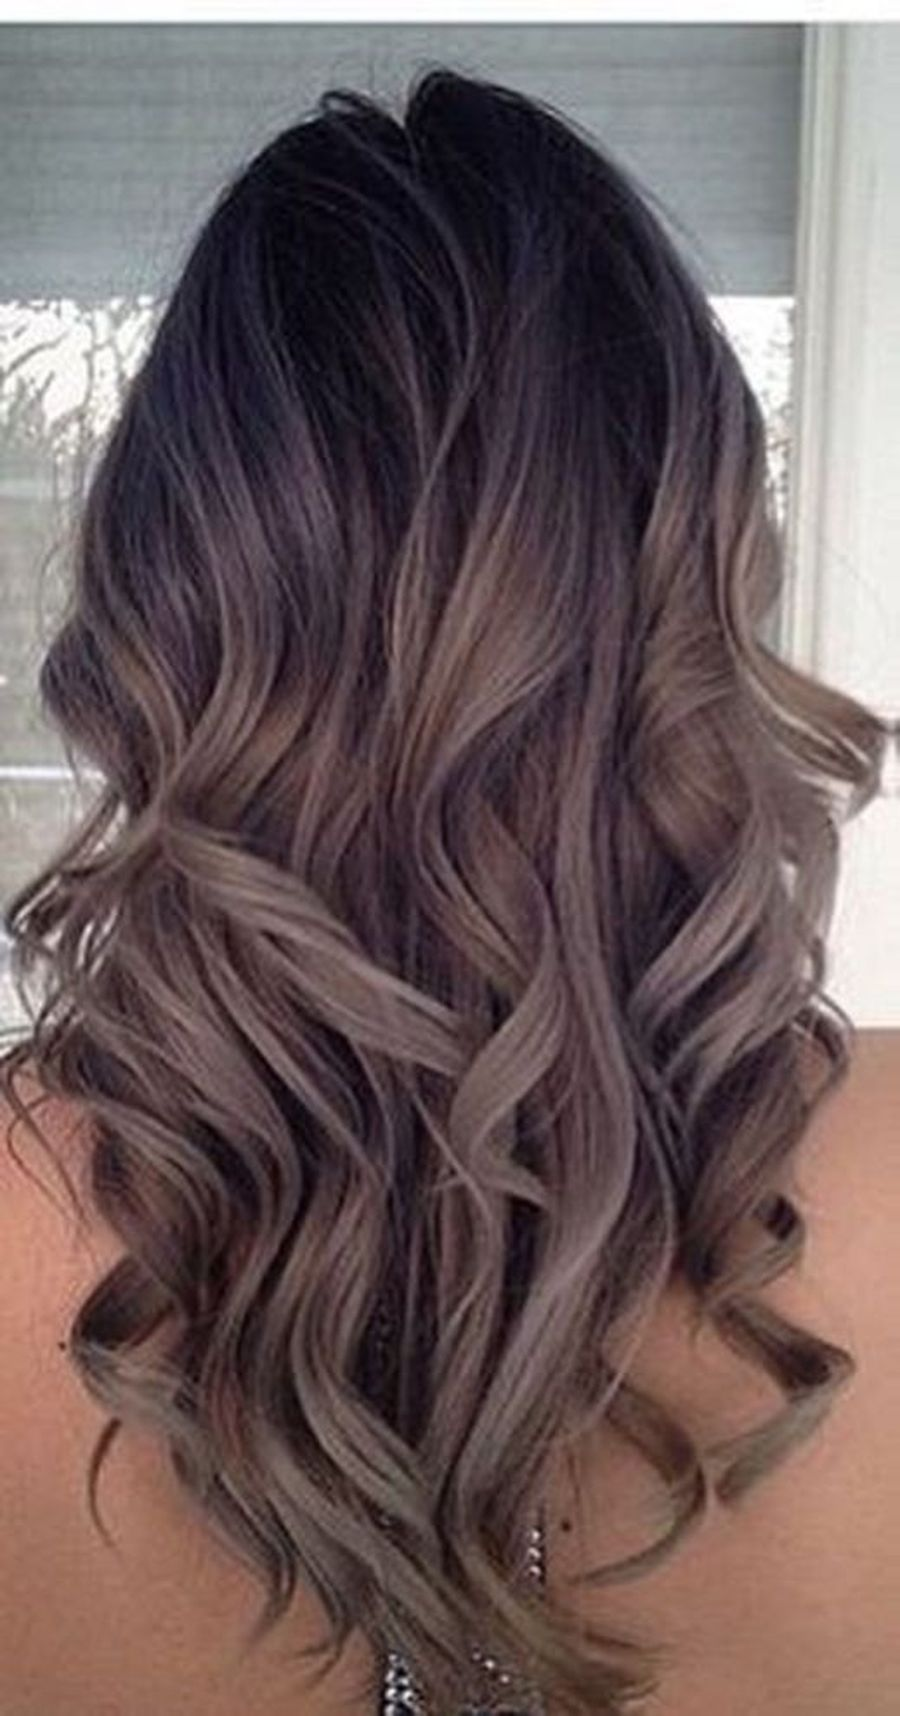 Inspiring haircolor style for winter and fall 53